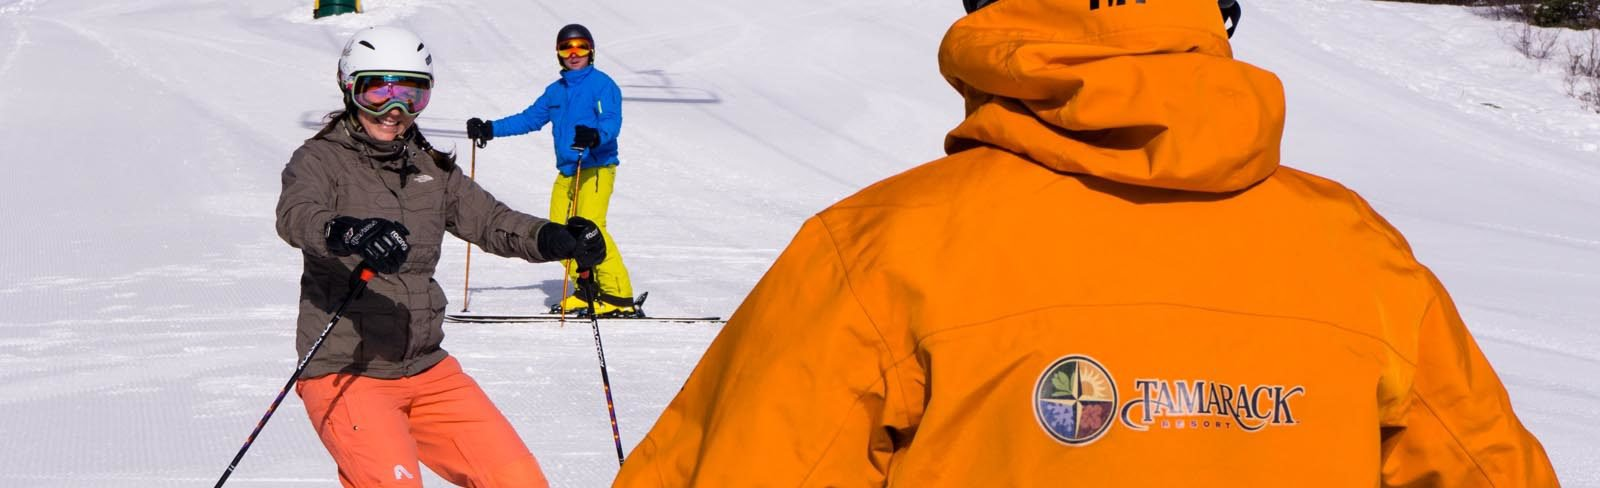 Learn to Ski and Snowboard